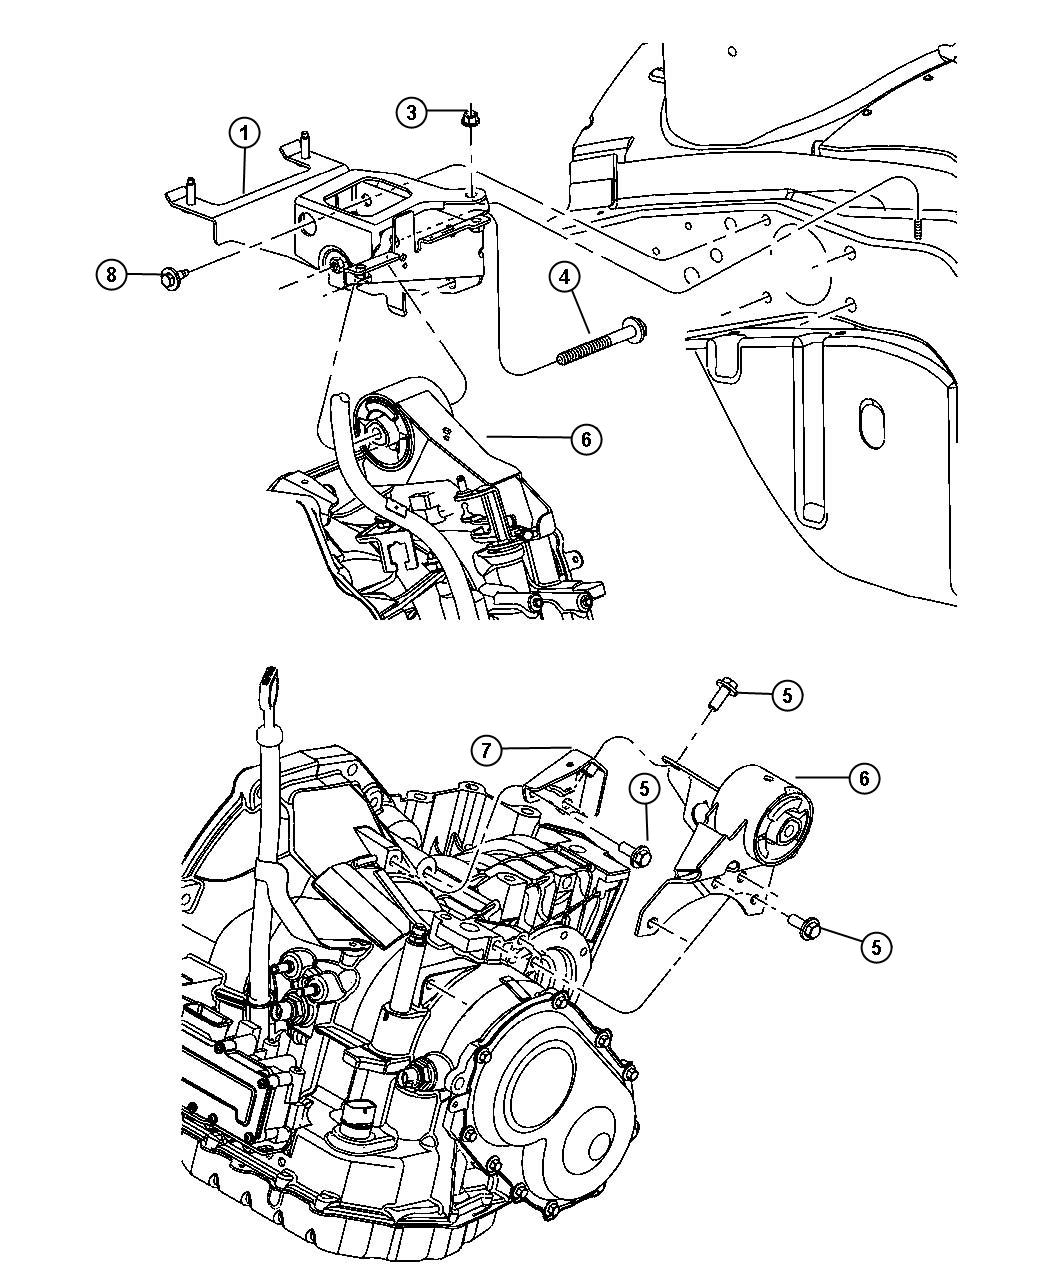 2003 Dodge Neon Transmission Diagram 36 Wiring Images 00i75927 Diagrams 2000 Intrepid At